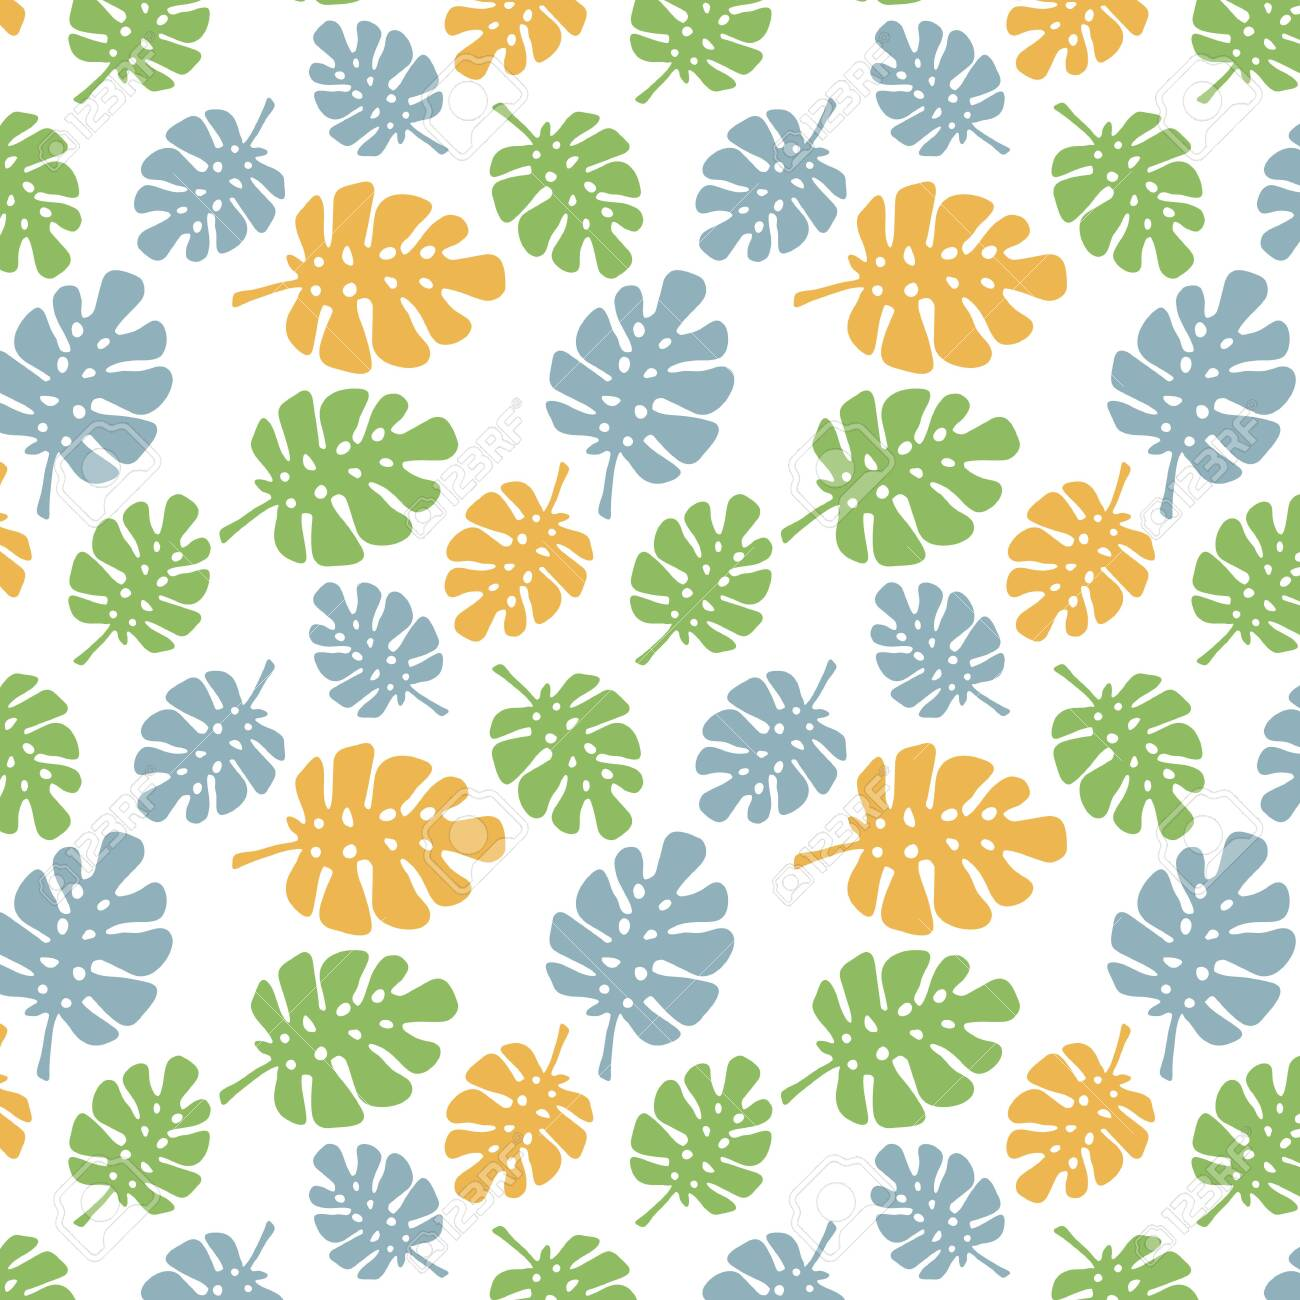 Abstract Seamless Pattern Blue Orange Green Palm Leaf Vector Royalty Free Cliparts Vectors And Stock Illustration Image 140755889